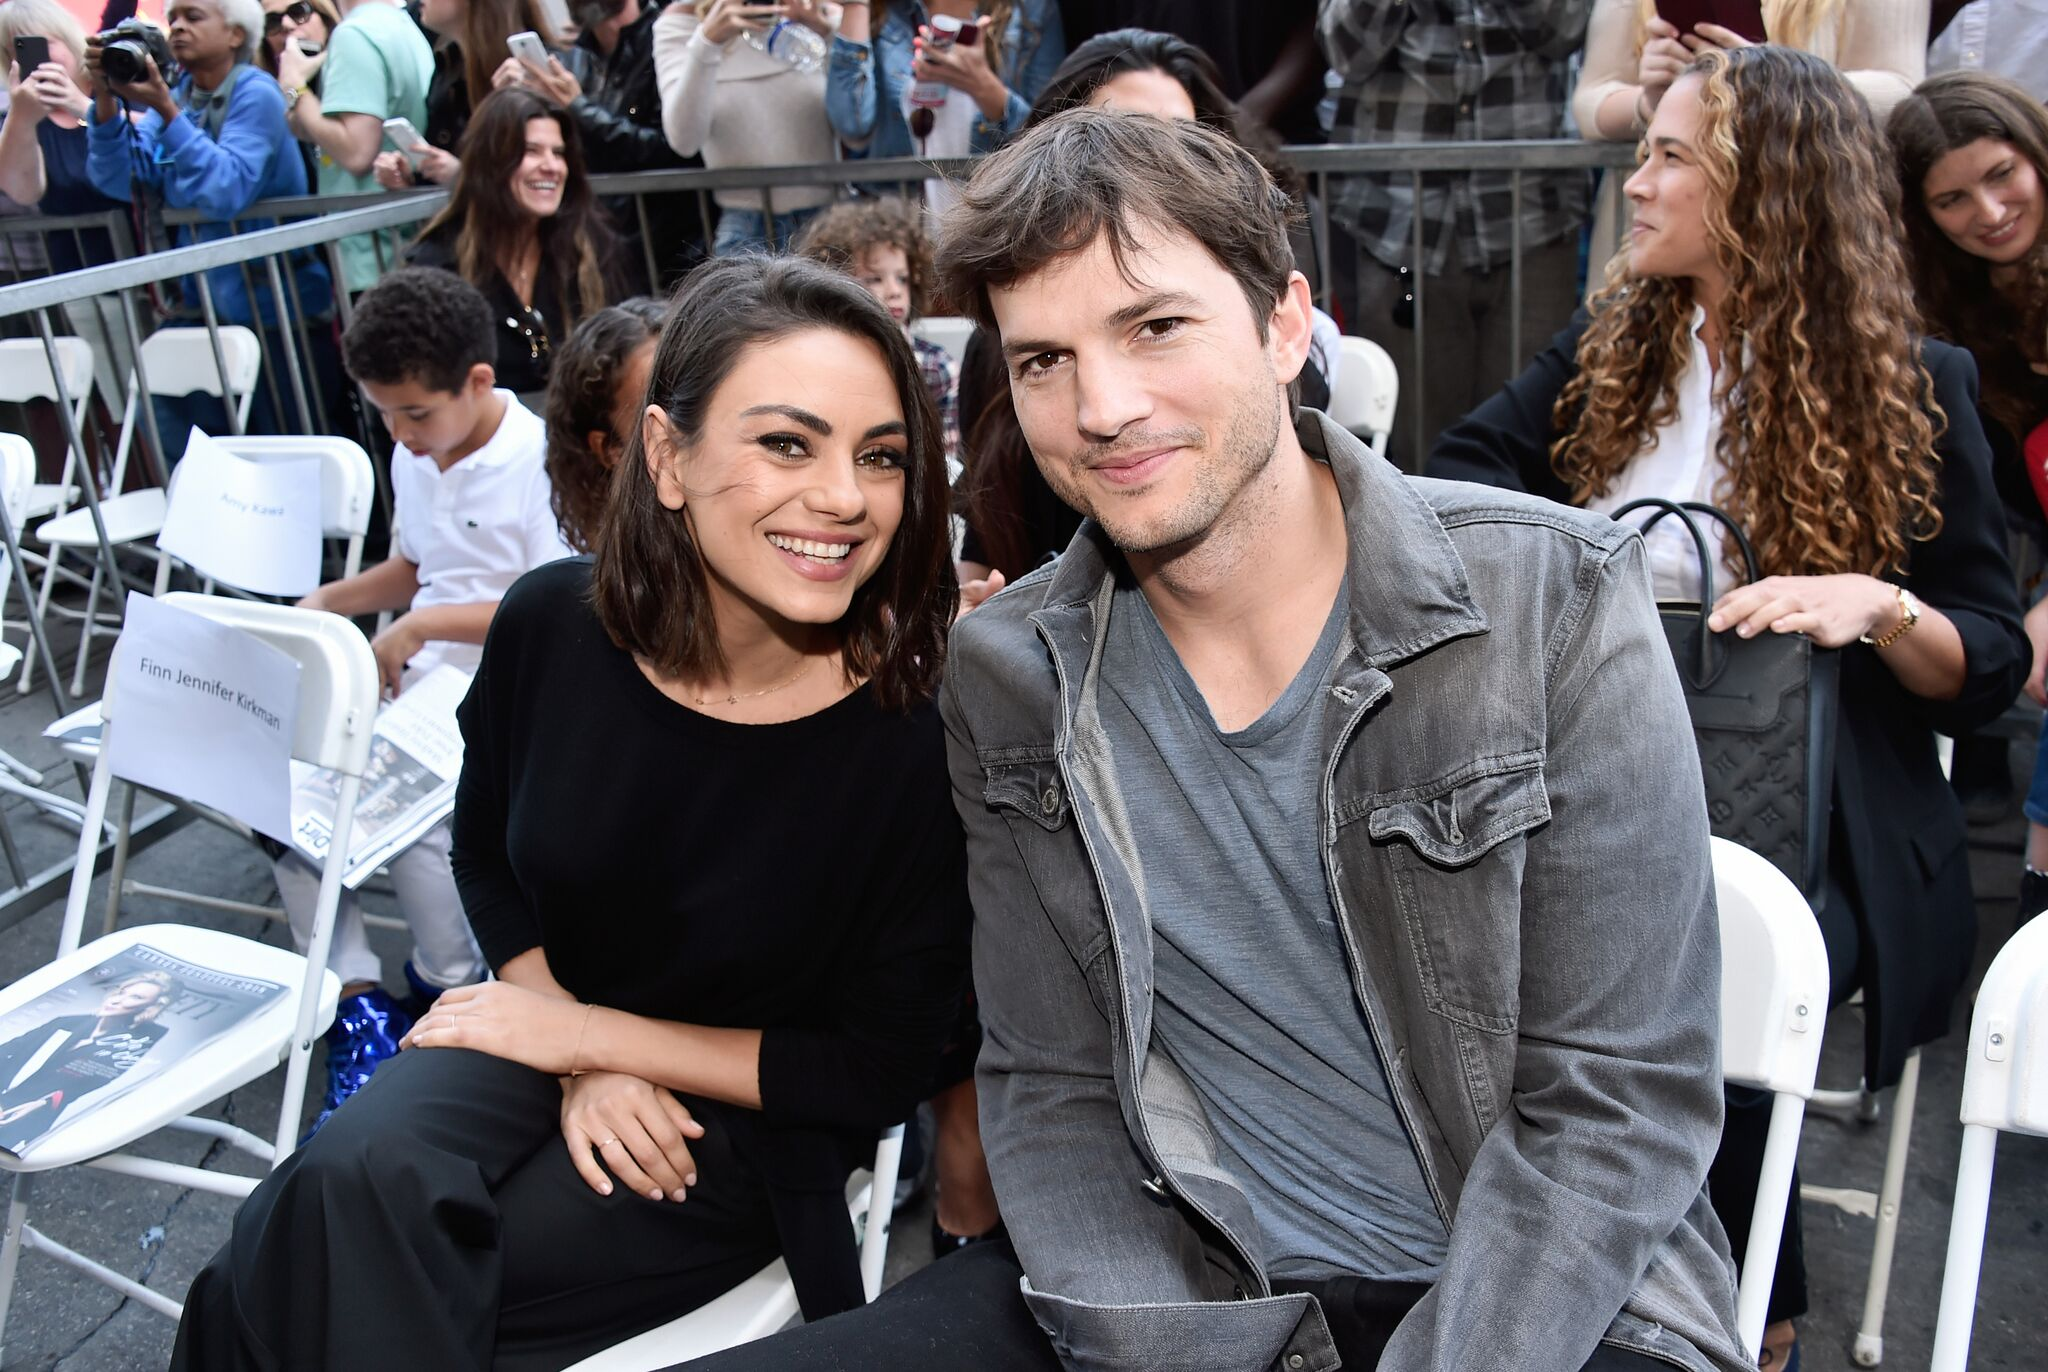 Mila Kunis und Ashton Kutcher bei der Zoe Saldana Walk Of Fame-Star-Zeremonie | Quelle: Getty Images